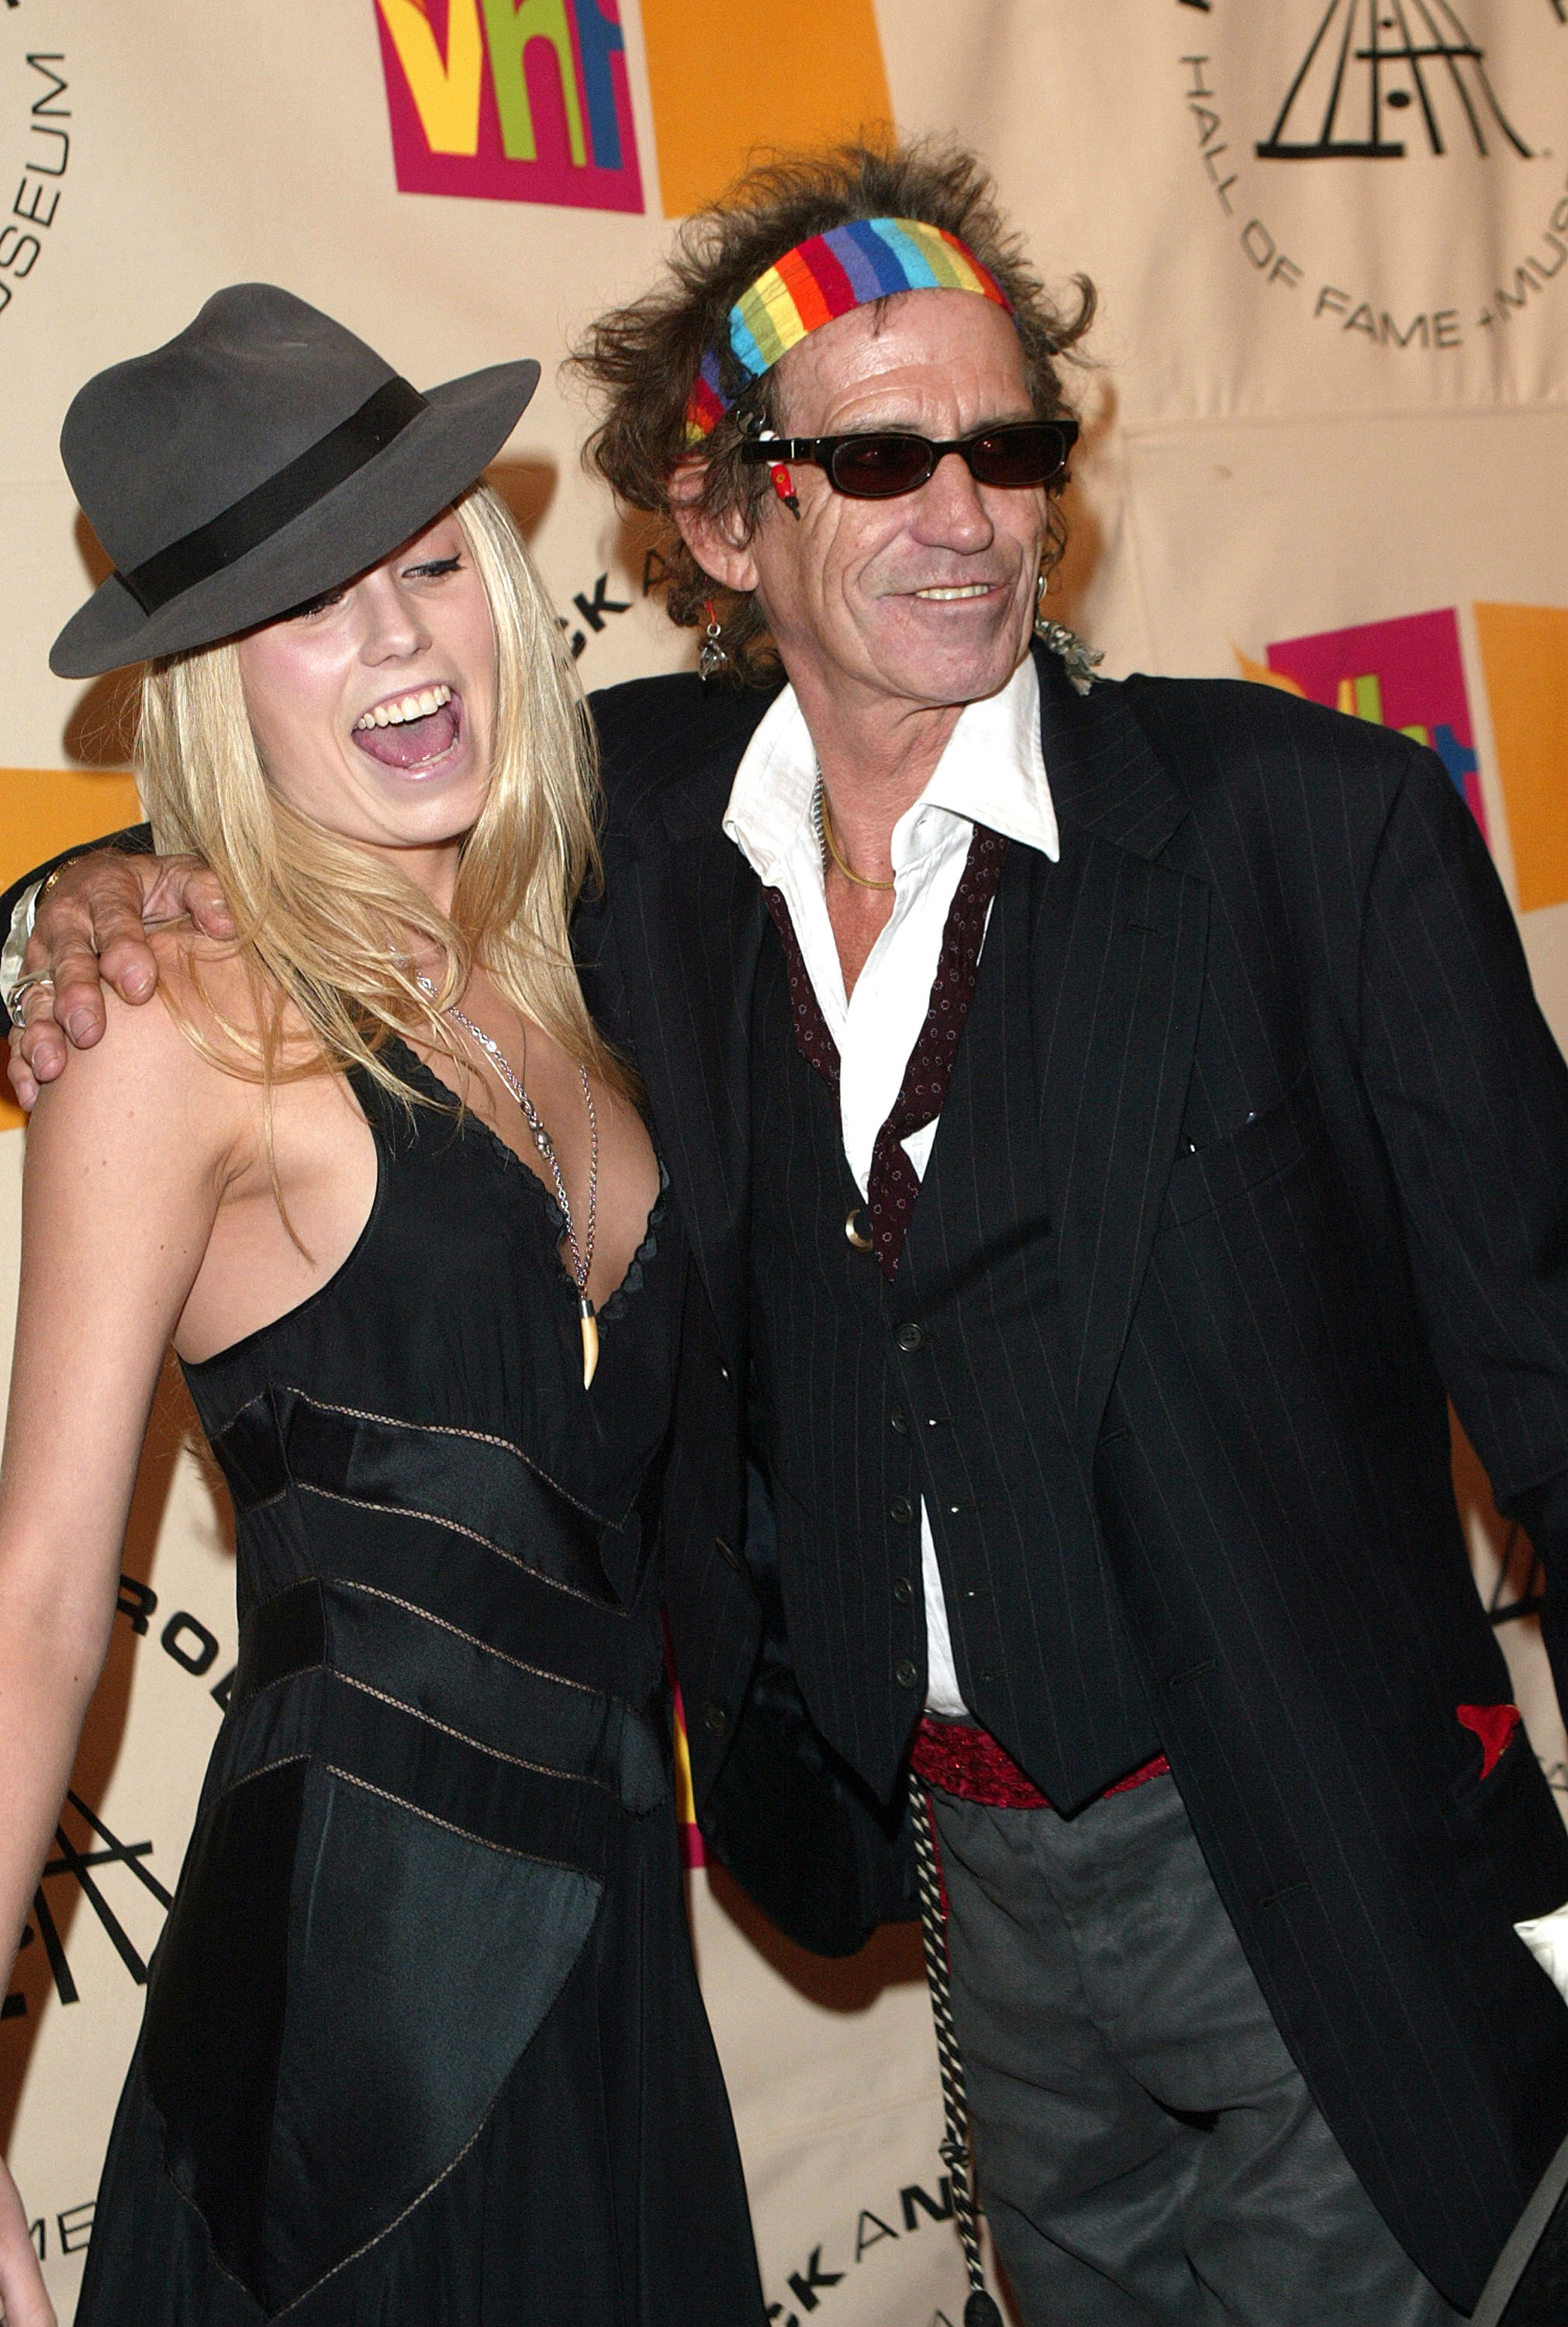 NEW YORK - MARCH 15:  Keith Richards and daughter Alexandra Richards arrive at the Rock & Roll Hall Of Fame 19th Annual Induction Dinner at the Waldorf Astoria Hotel March 15, 2004 in New York City.  (Photo by Evan Agostini/Getty Images)